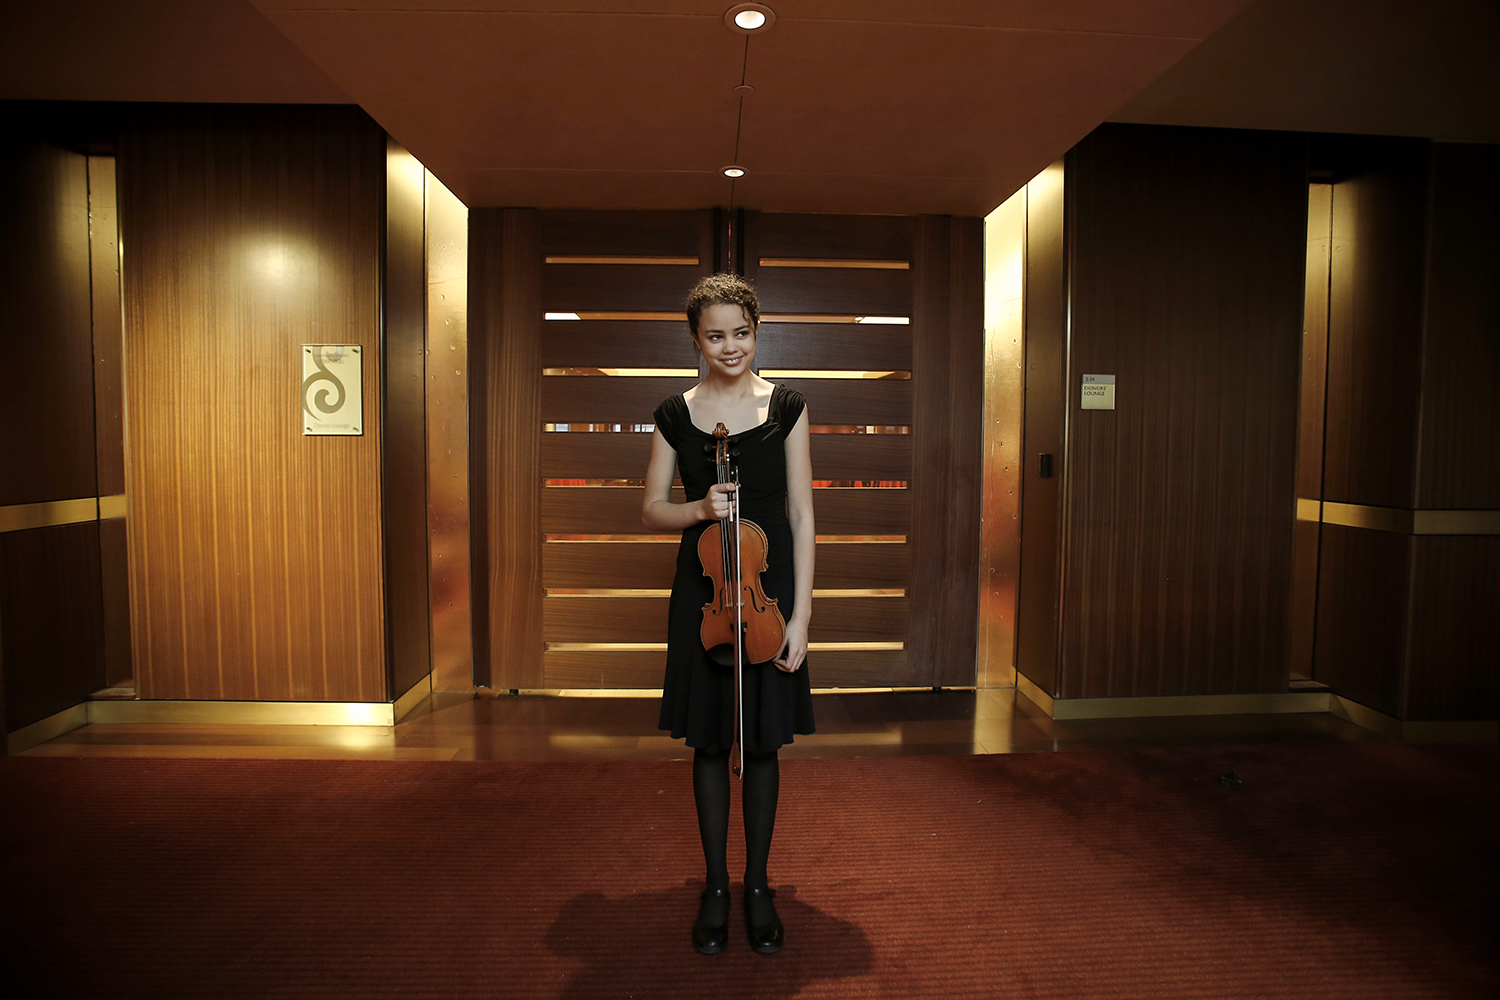 Maria Sanderson,14 (15 on Feb. 28), from Nashville, IN after her individual performance for the Sphinx Competition on Thursday, Feb. 20, 2014 at Orchestra Hall in Detroit. Tim Galloway for Al Jazeera America.